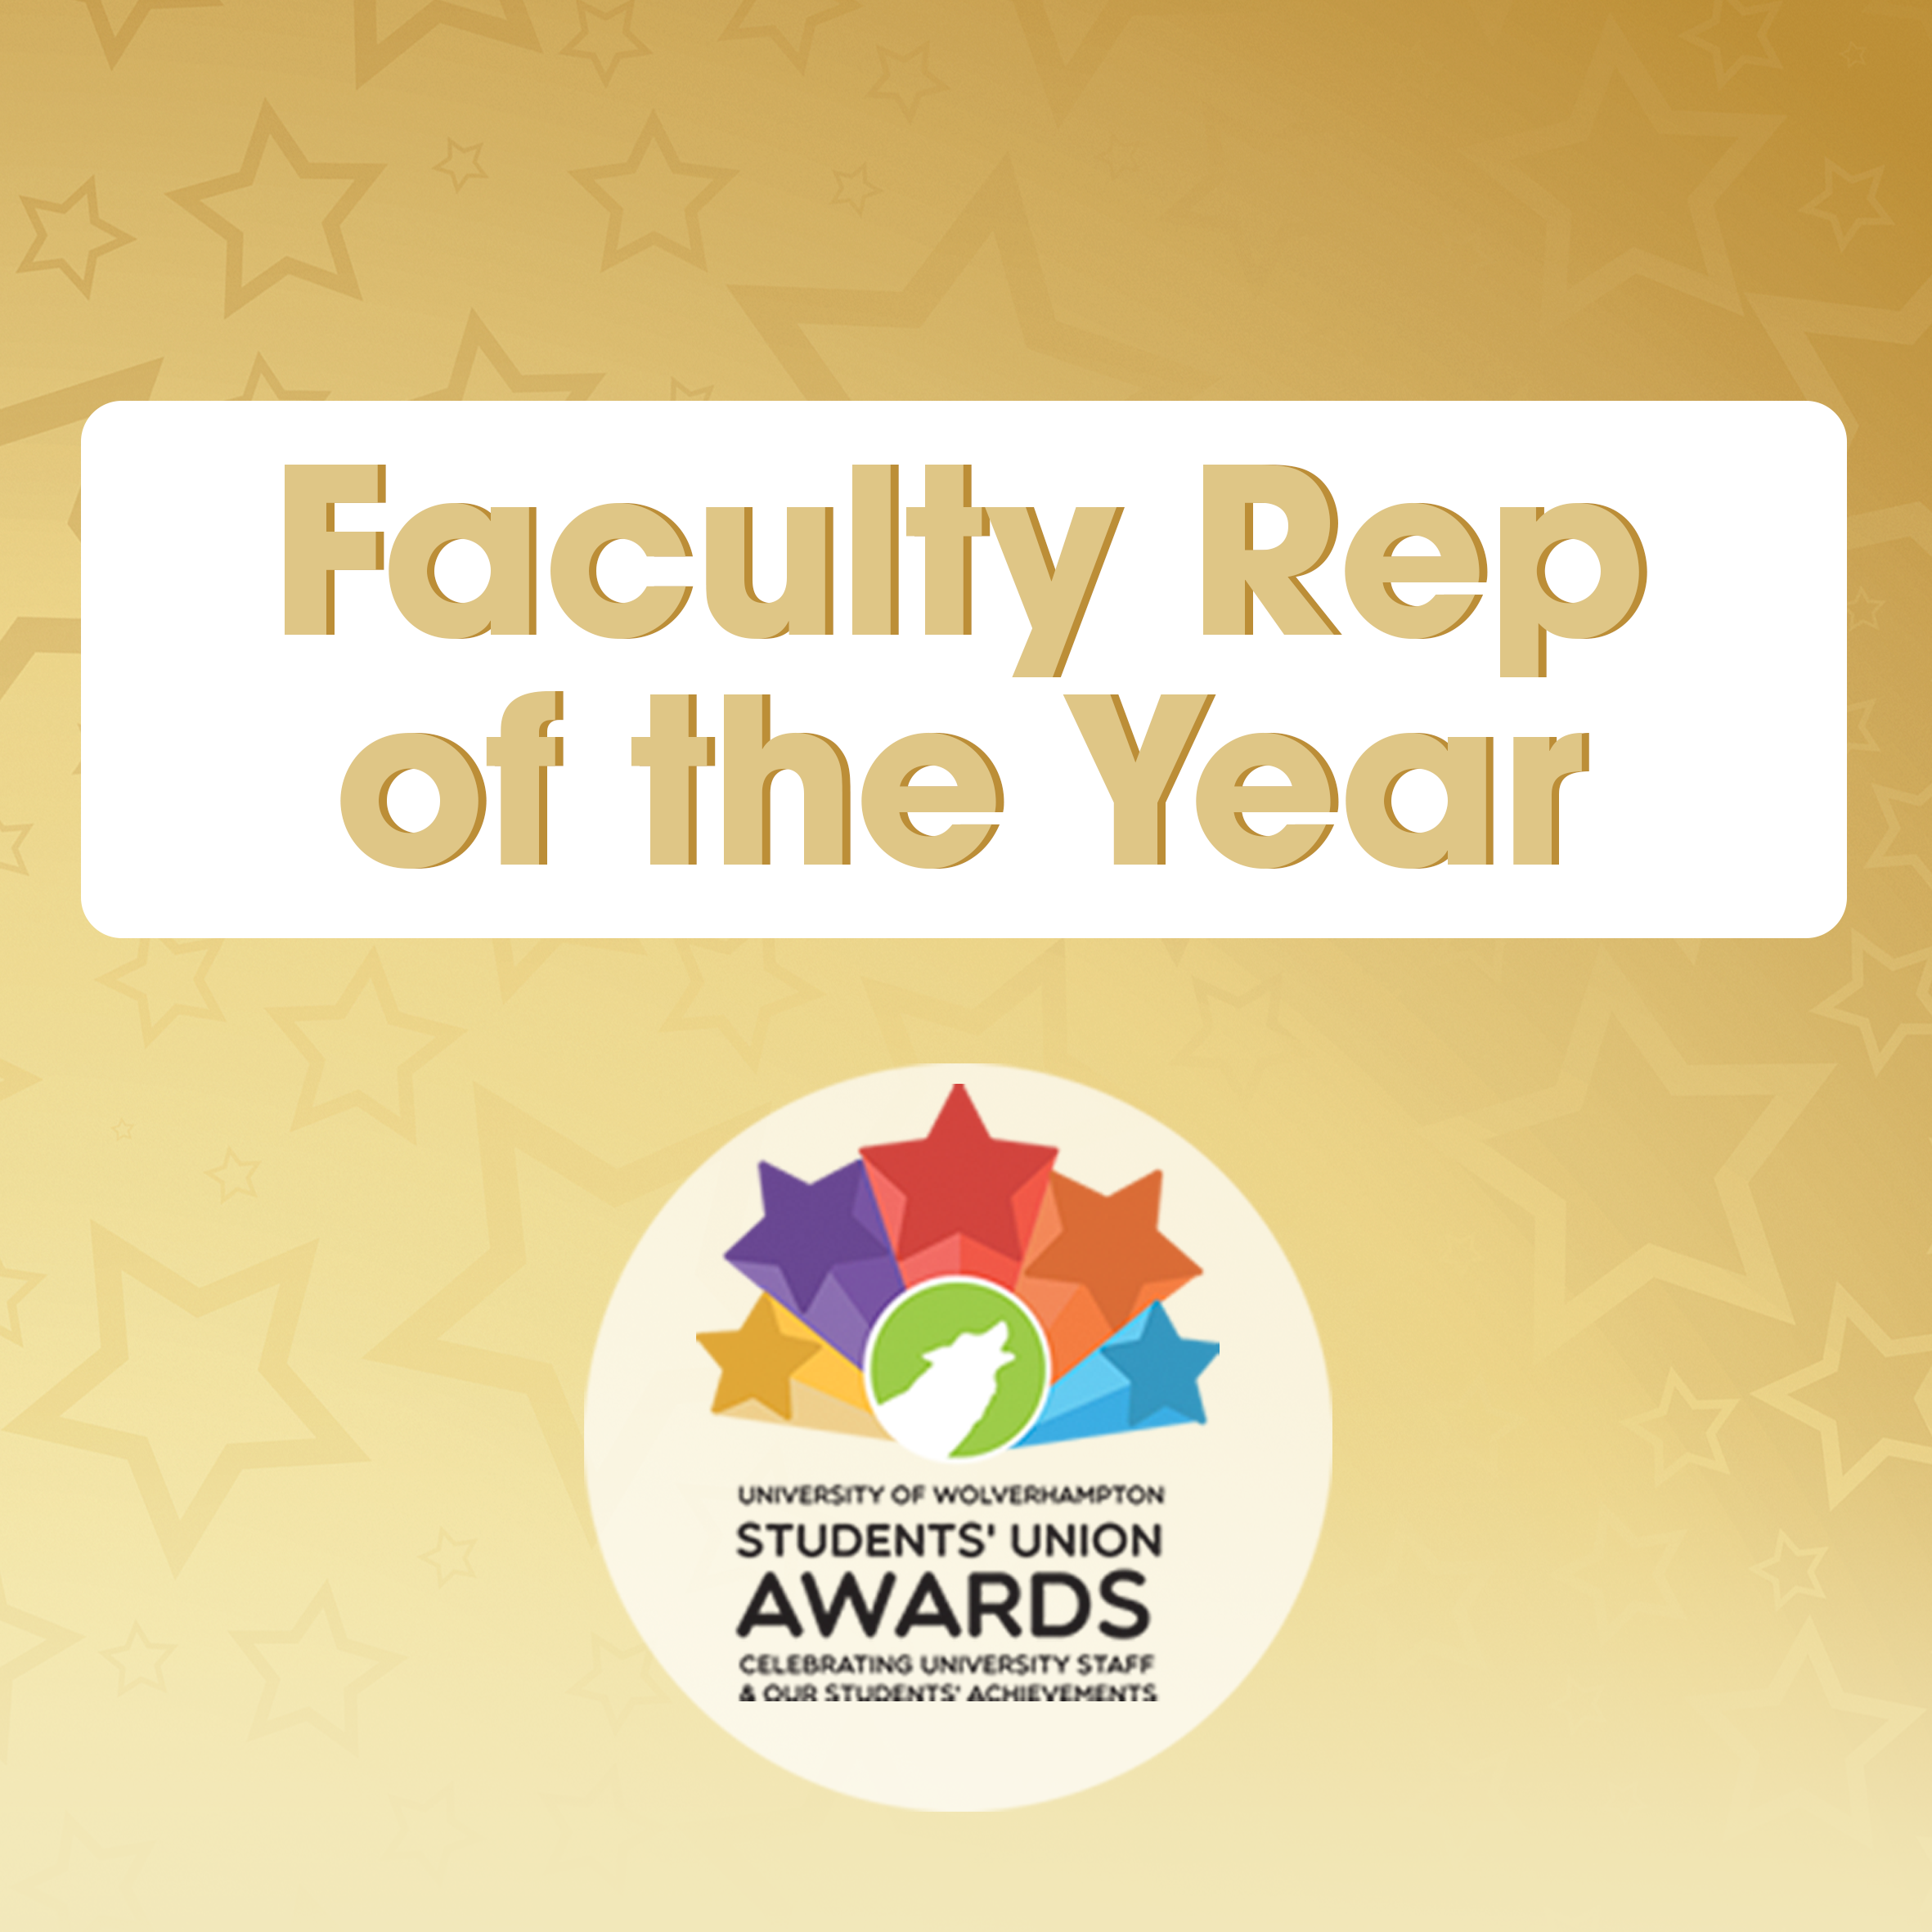 Faculty Rep of the Year